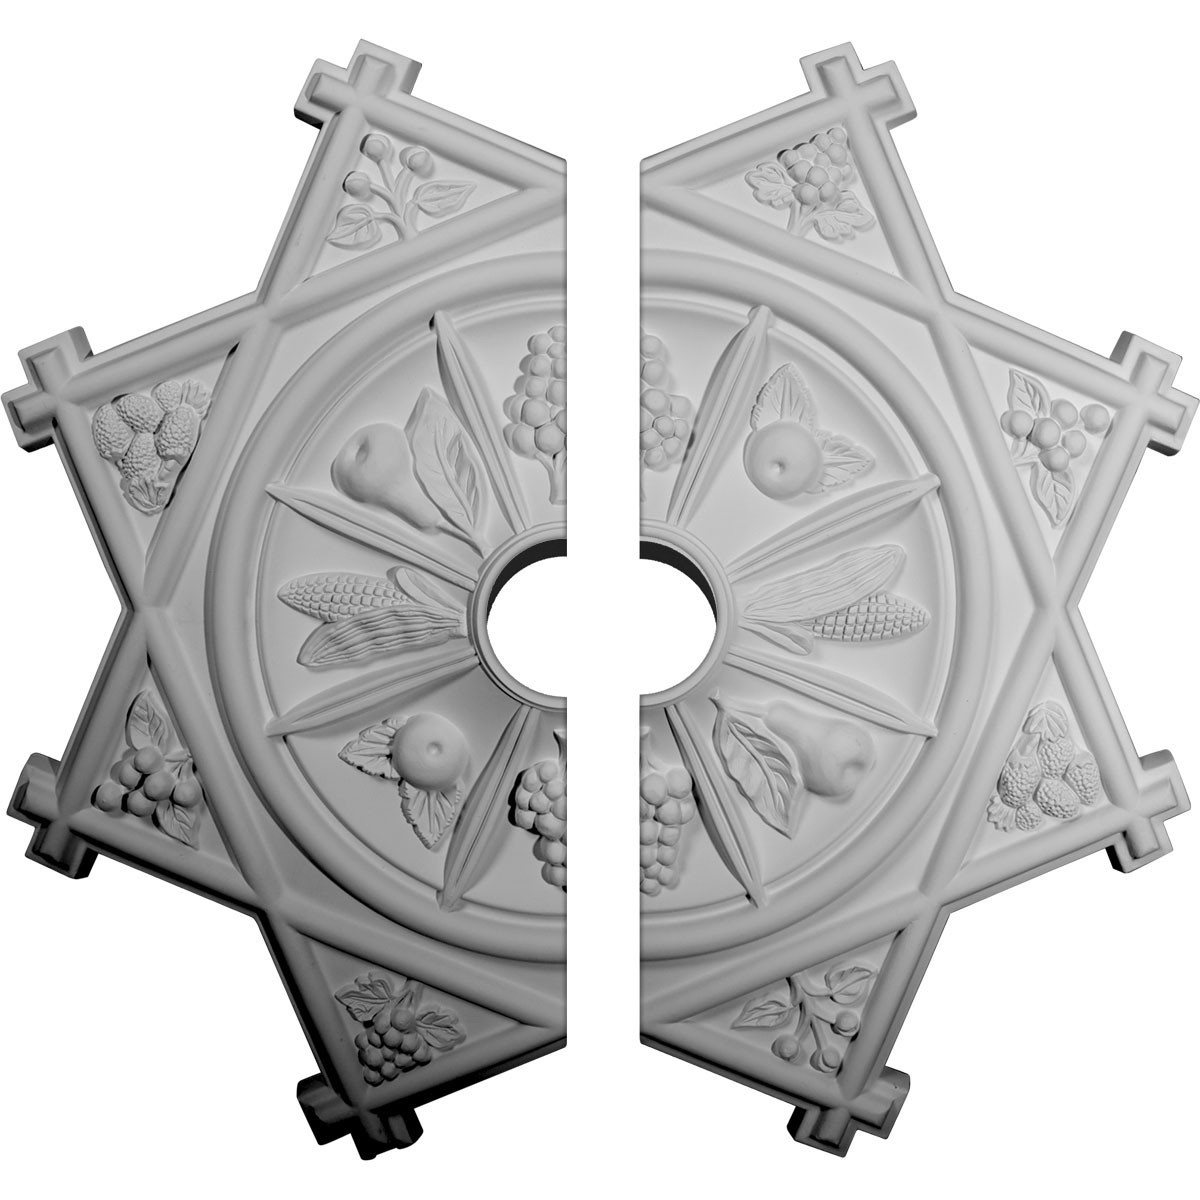 """EM-CM38AN2-06000 - 38 1/4""""OD x 6""""ID x 1 1/2""""P Antilles Ceiling Medallion, Two Piece (Fits Canopies up to 6"""")"""